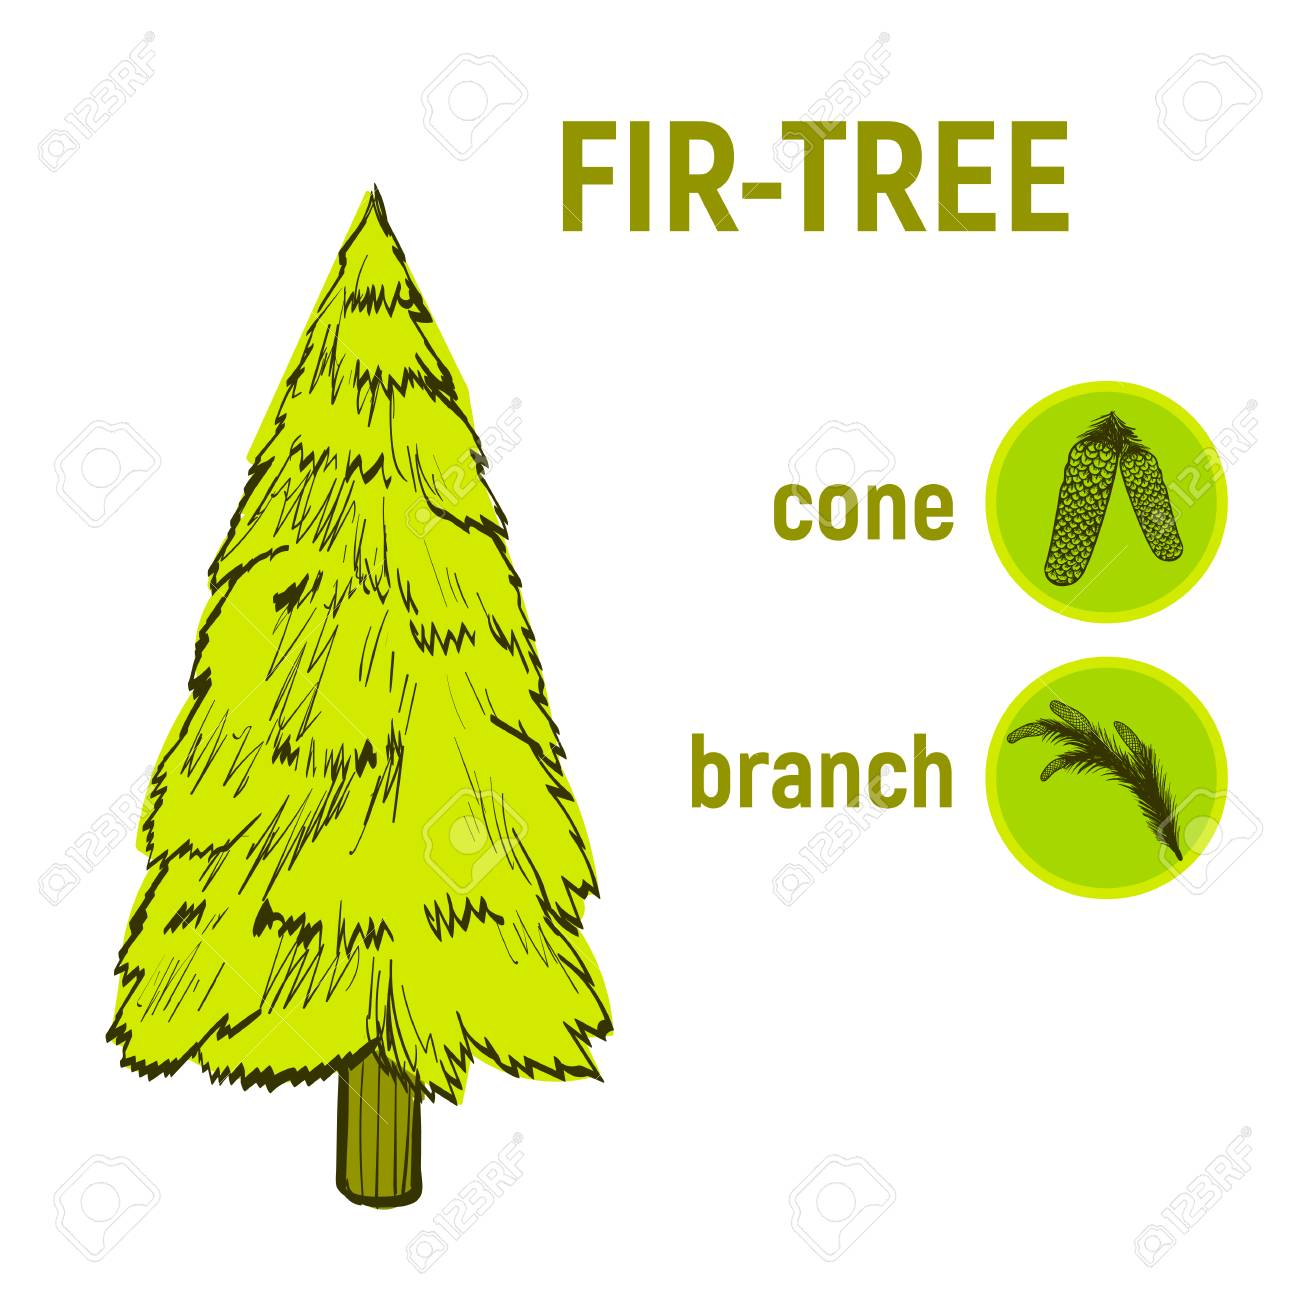 Color Drawing Of A Coniferous Tree, A Set Icon - A Fir-tree,.. Stock ...